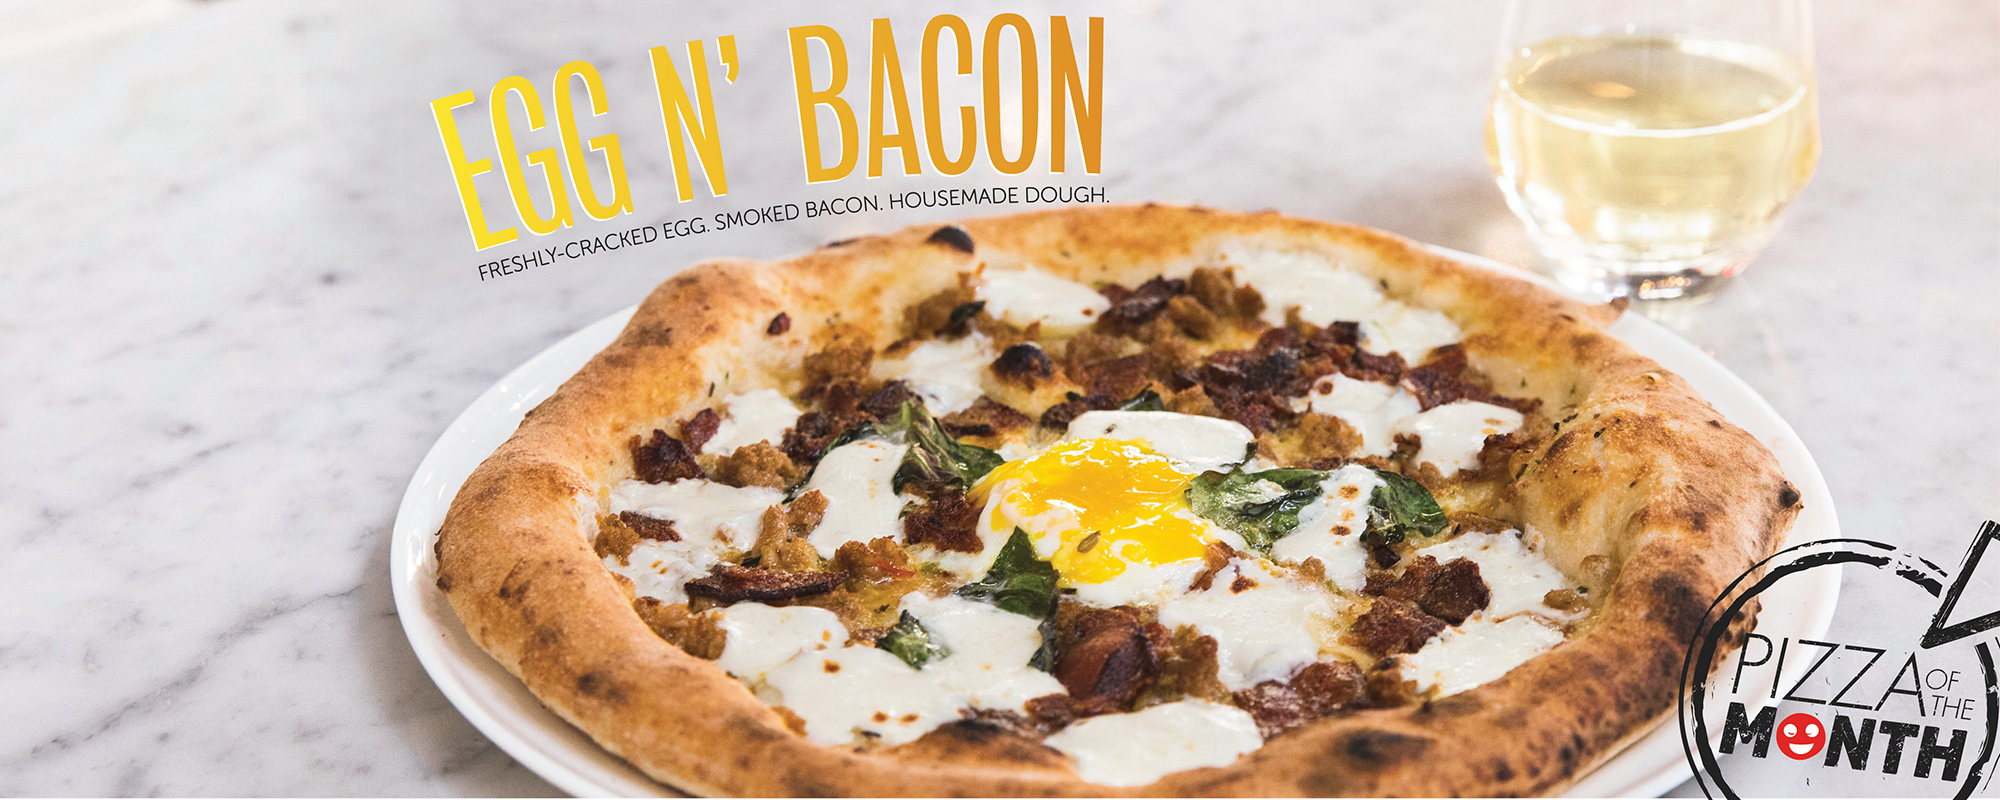 April Pizza of the Month, Egg n Bacon